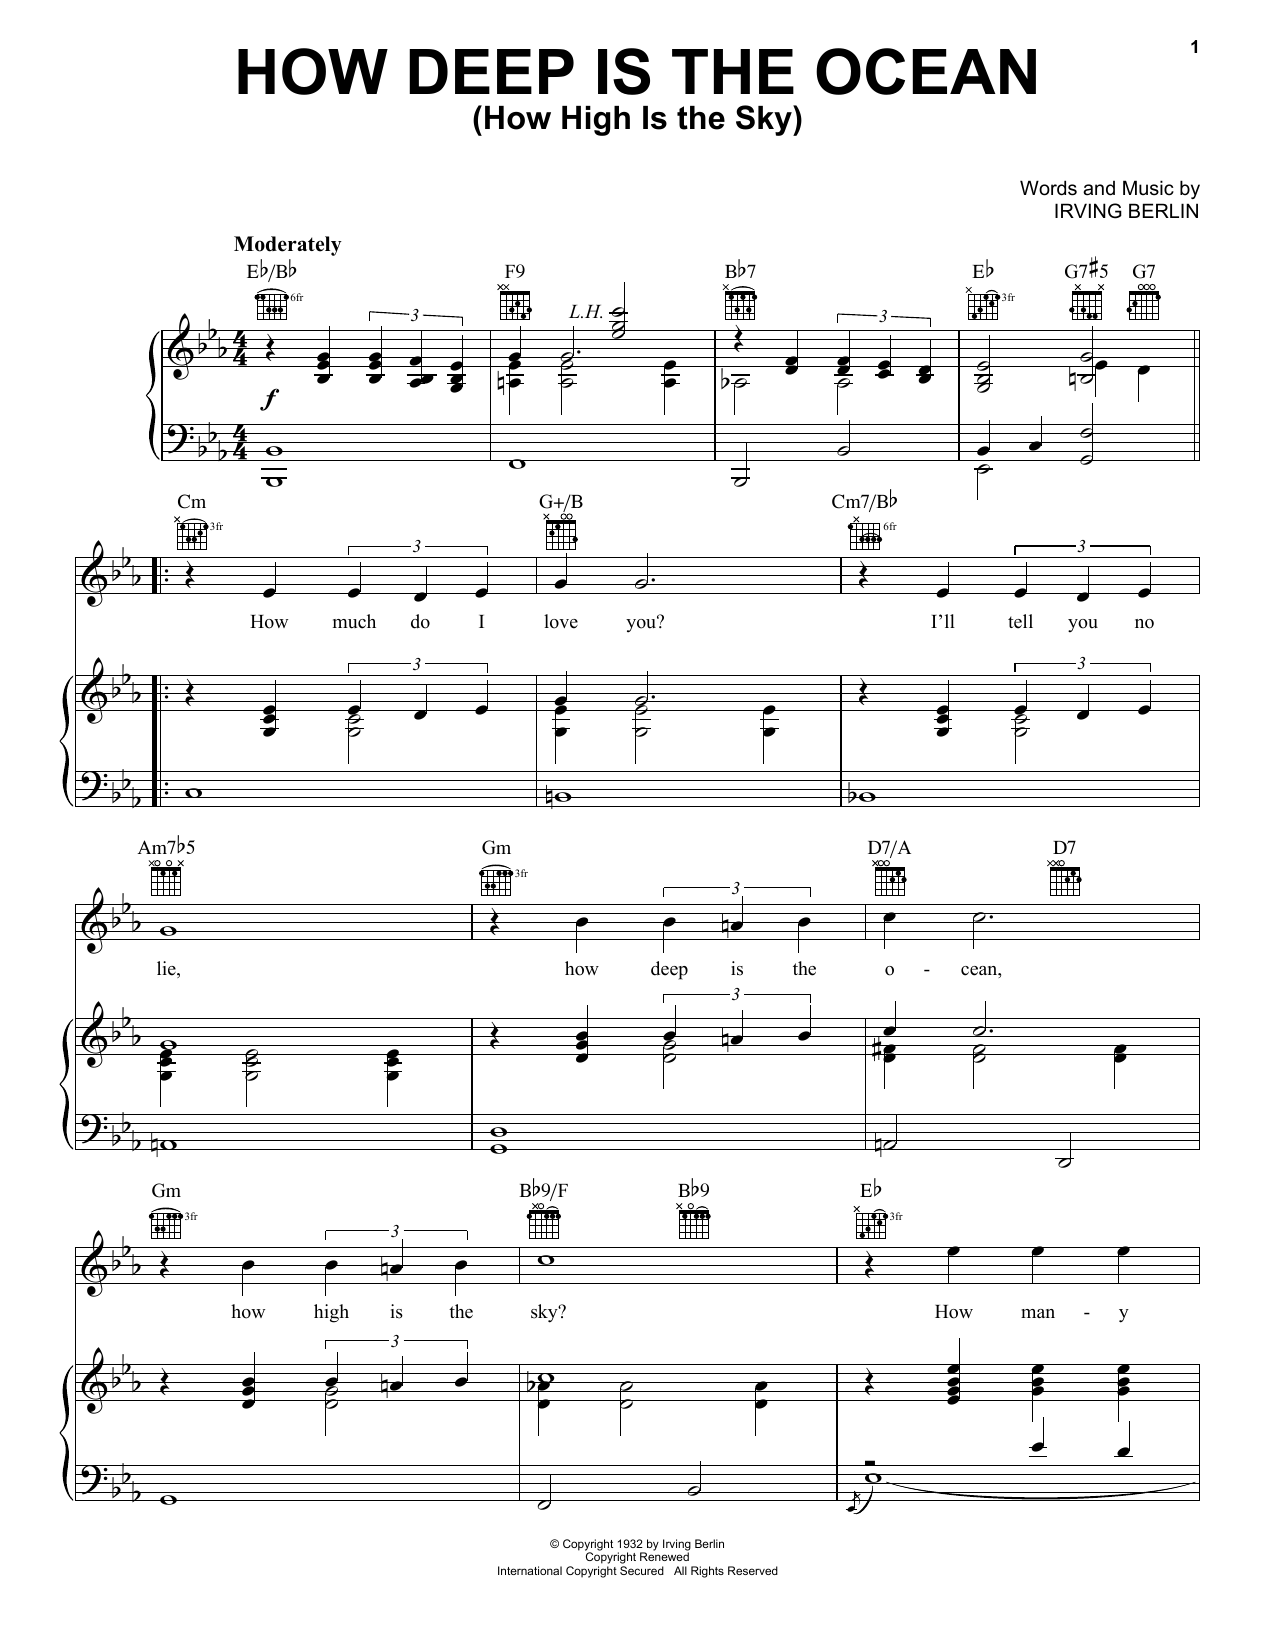 Irving Berlin How Deep Is The Ocean (How High Is The Sky) sheet music notes and chords